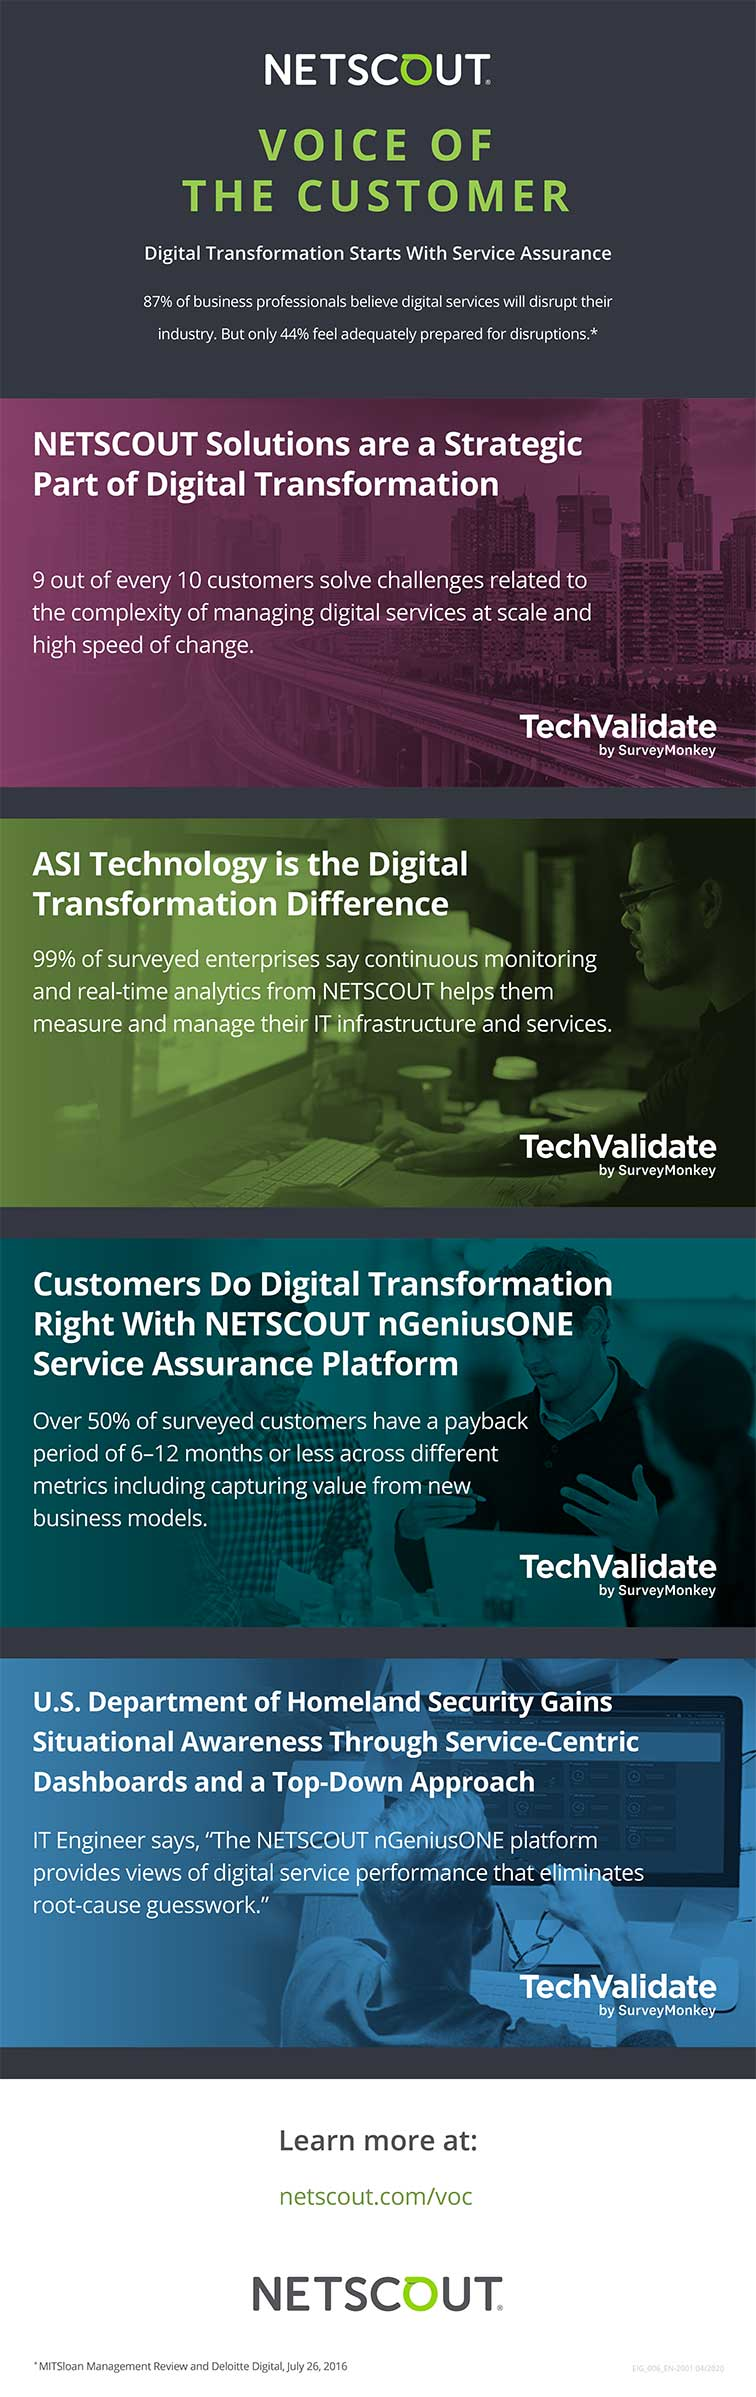 Digital Transformation VOC